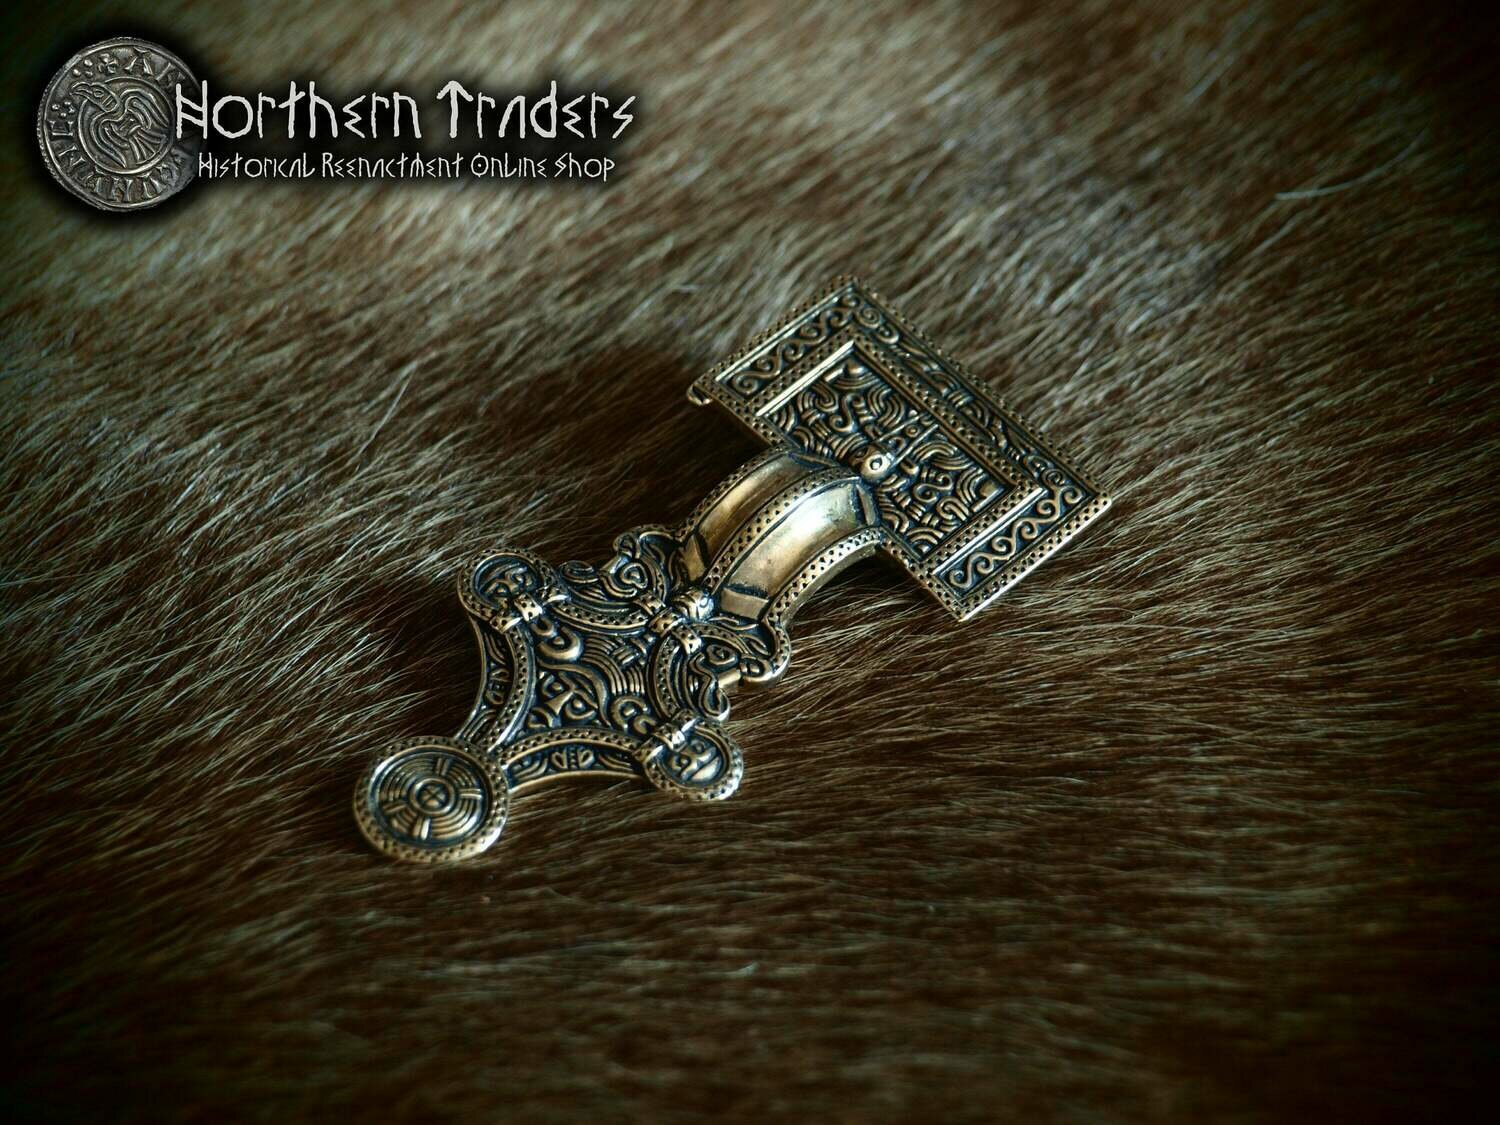 Anglosaxon Brooch from the Island of Wight